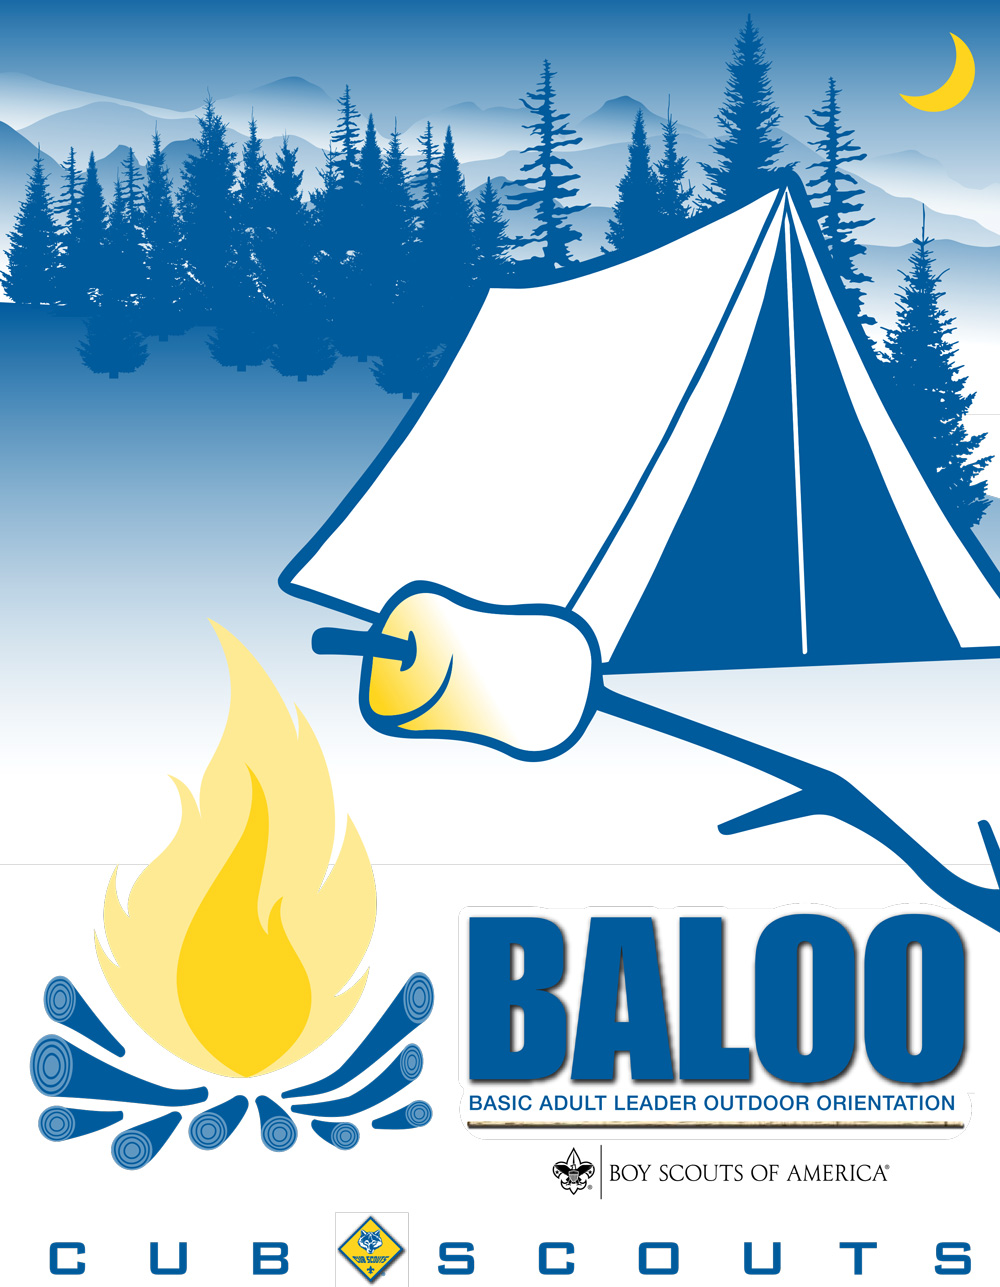 baloo a quick guide to the basic adult leader outdoor orientation rh blog scoutingmagazine org Cub Scout Baloo Training Baloo Training Program